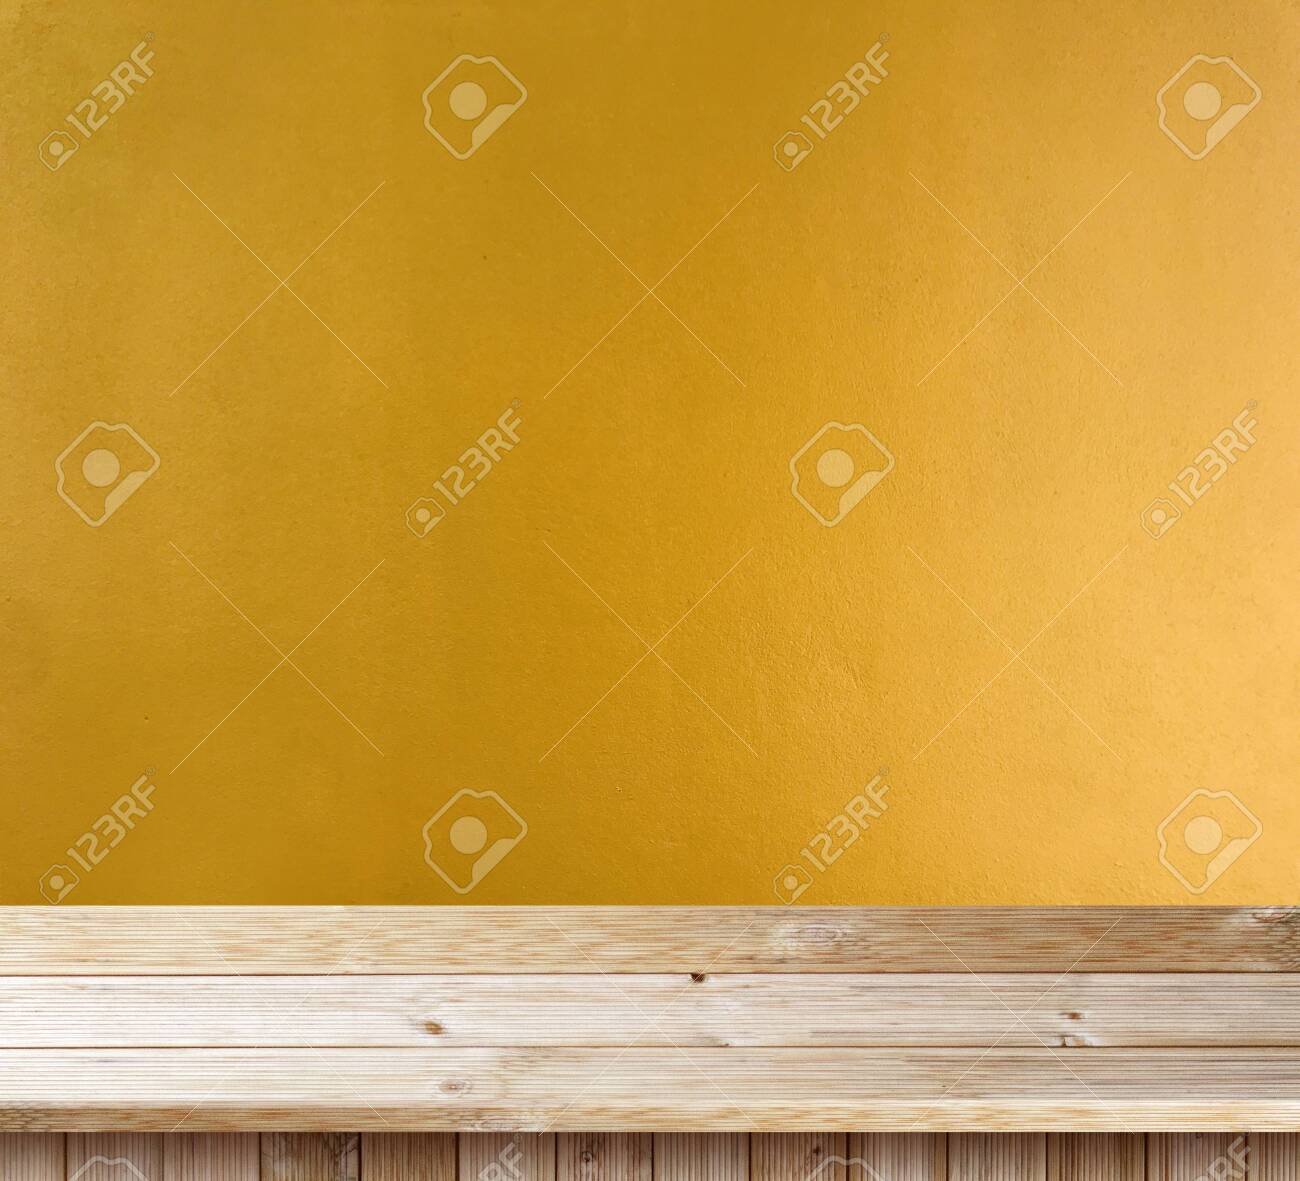 Table top wooden deck on yellow wall texture - 124800837